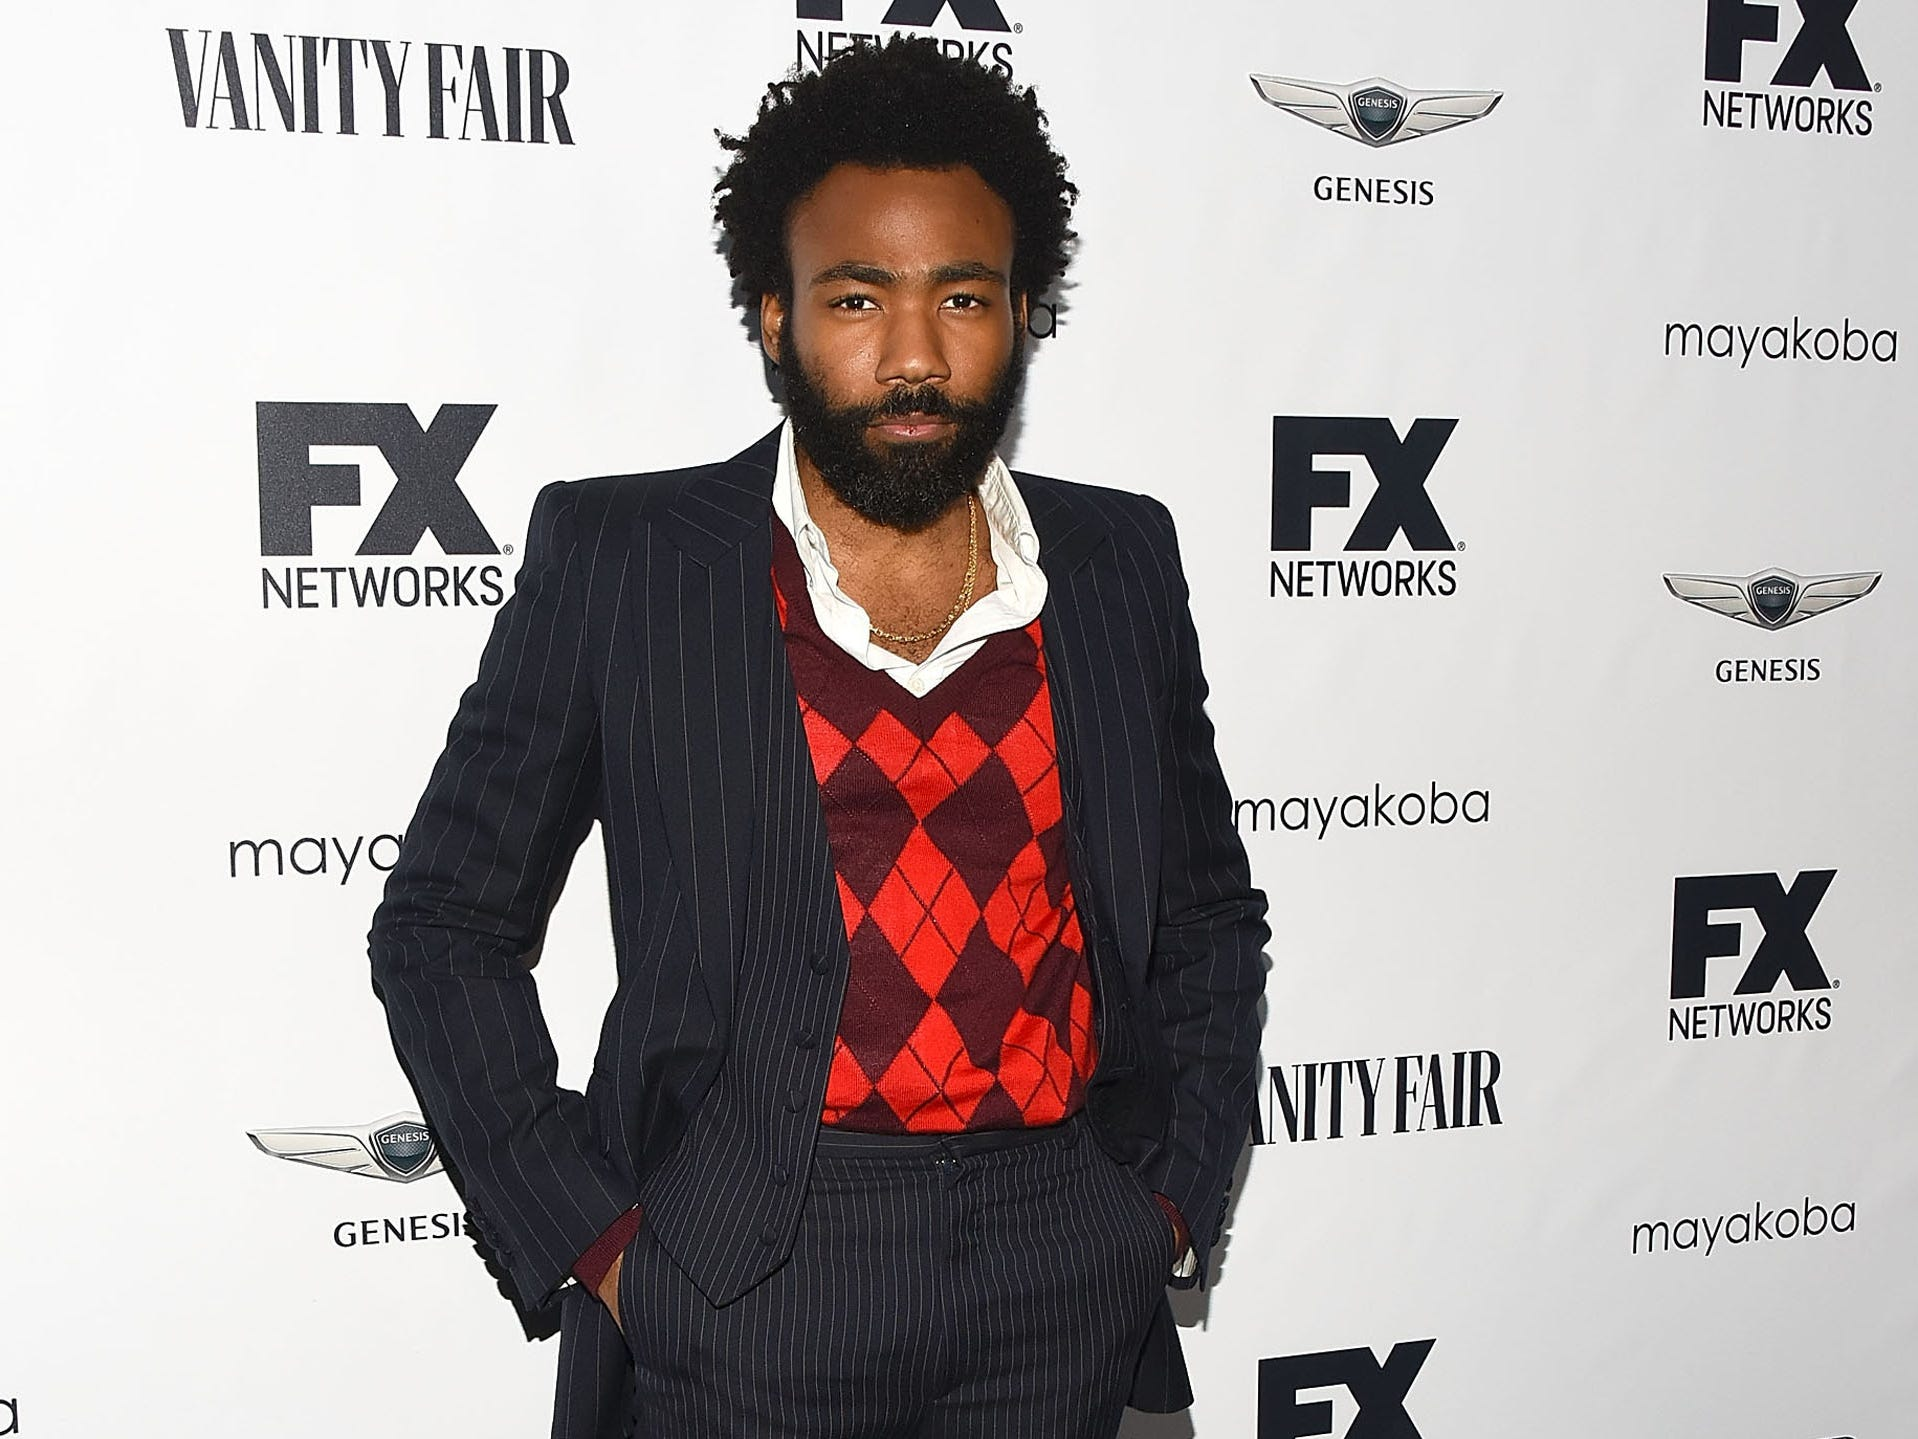 LOS ANGELES, CA - SEPTEMBER 16:  Donald Glover attends FX Networks celebration of their Emmy nominees at CRAFT LA on September 16, 2018 in Los Angeles, California.  (Photo by Araya Diaz/Getty Images) ORG XMIT: 775226231 ORIG FILE ID: 1034589266